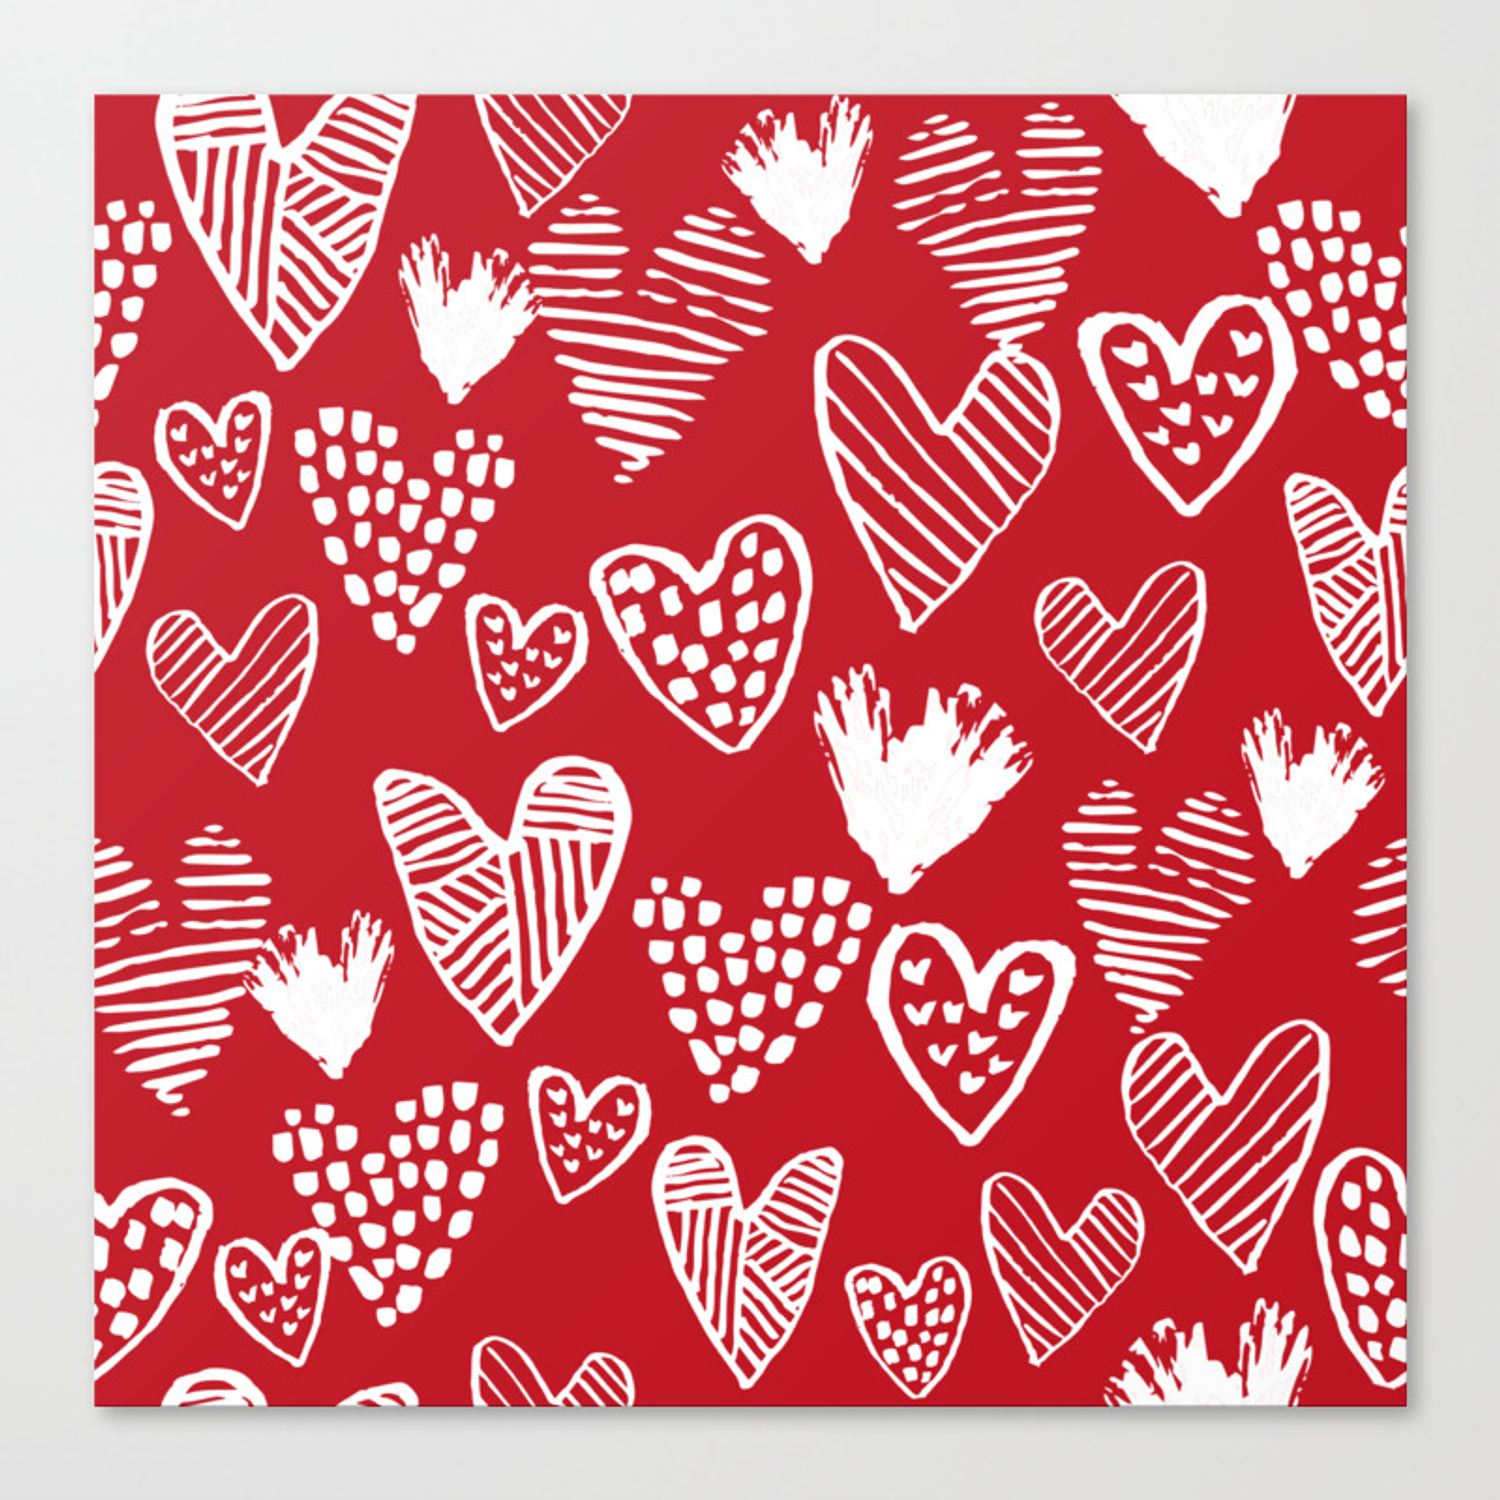 herats red and white pattern minimal valentines day cute girly ts hand drawn love patterns stretched canvas